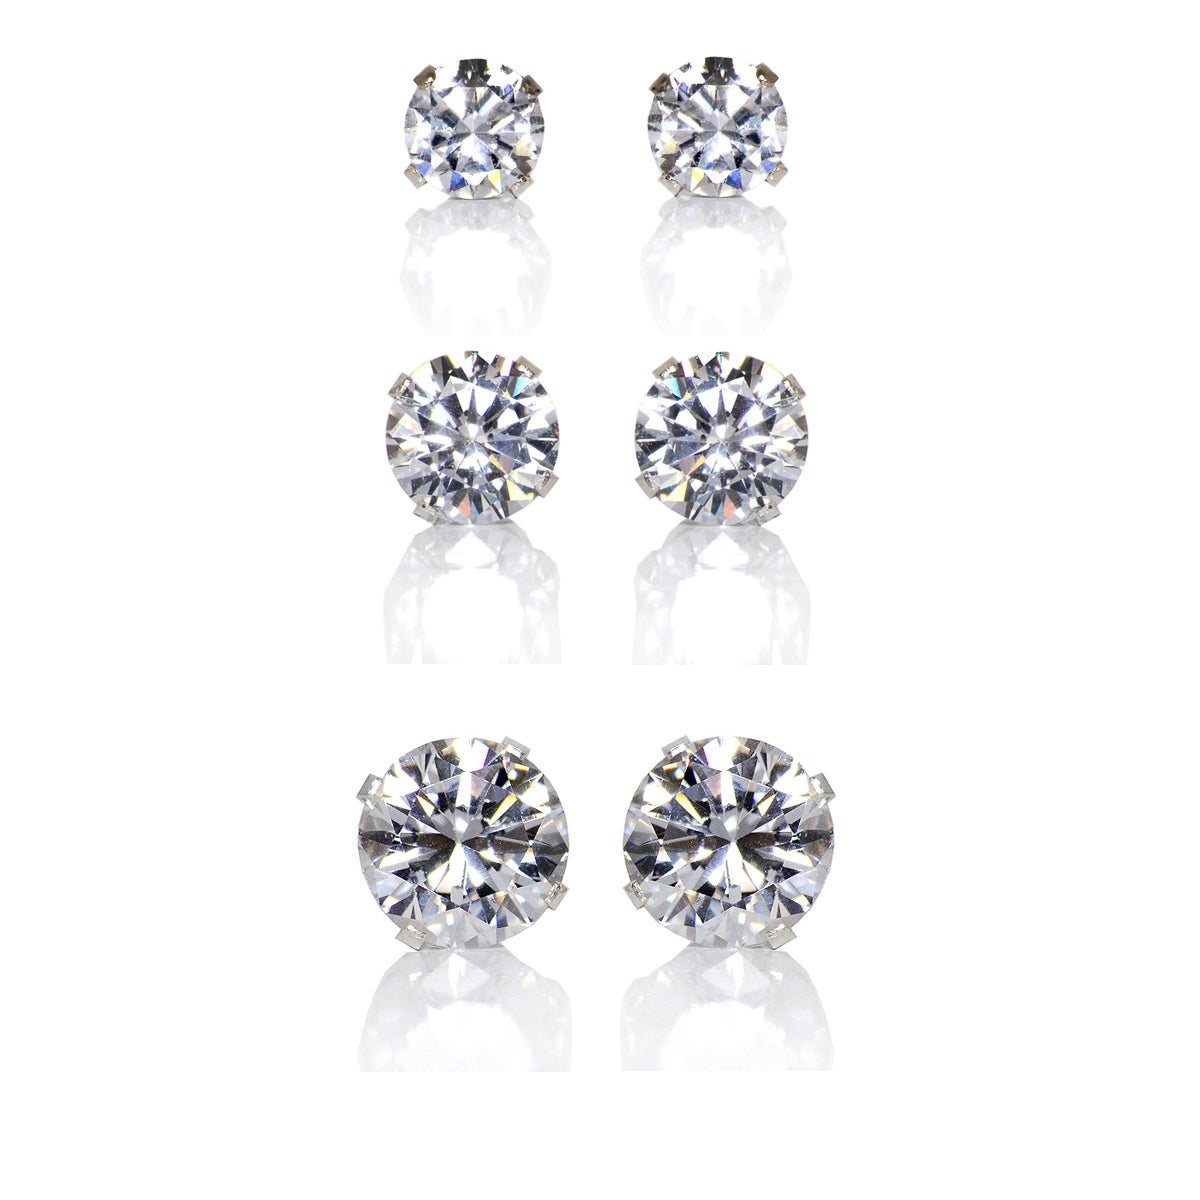 10 Pair Set Sterling Silver Cubic Zirconia Oval Earrings Studs 0.5 carats//pair